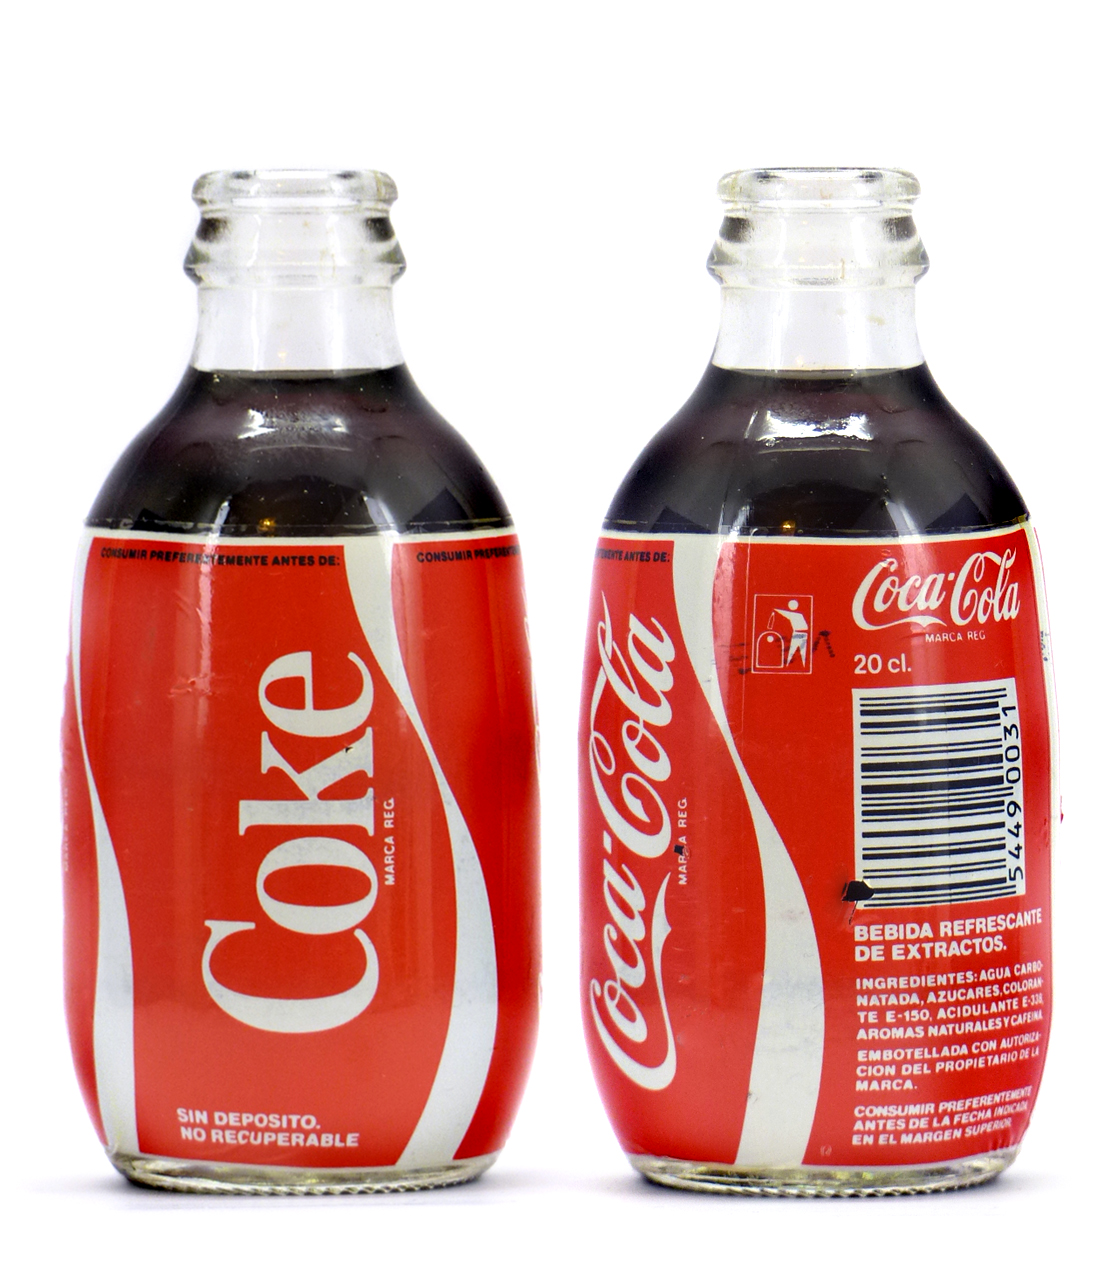 Coke Bottle from Spain (ES024)